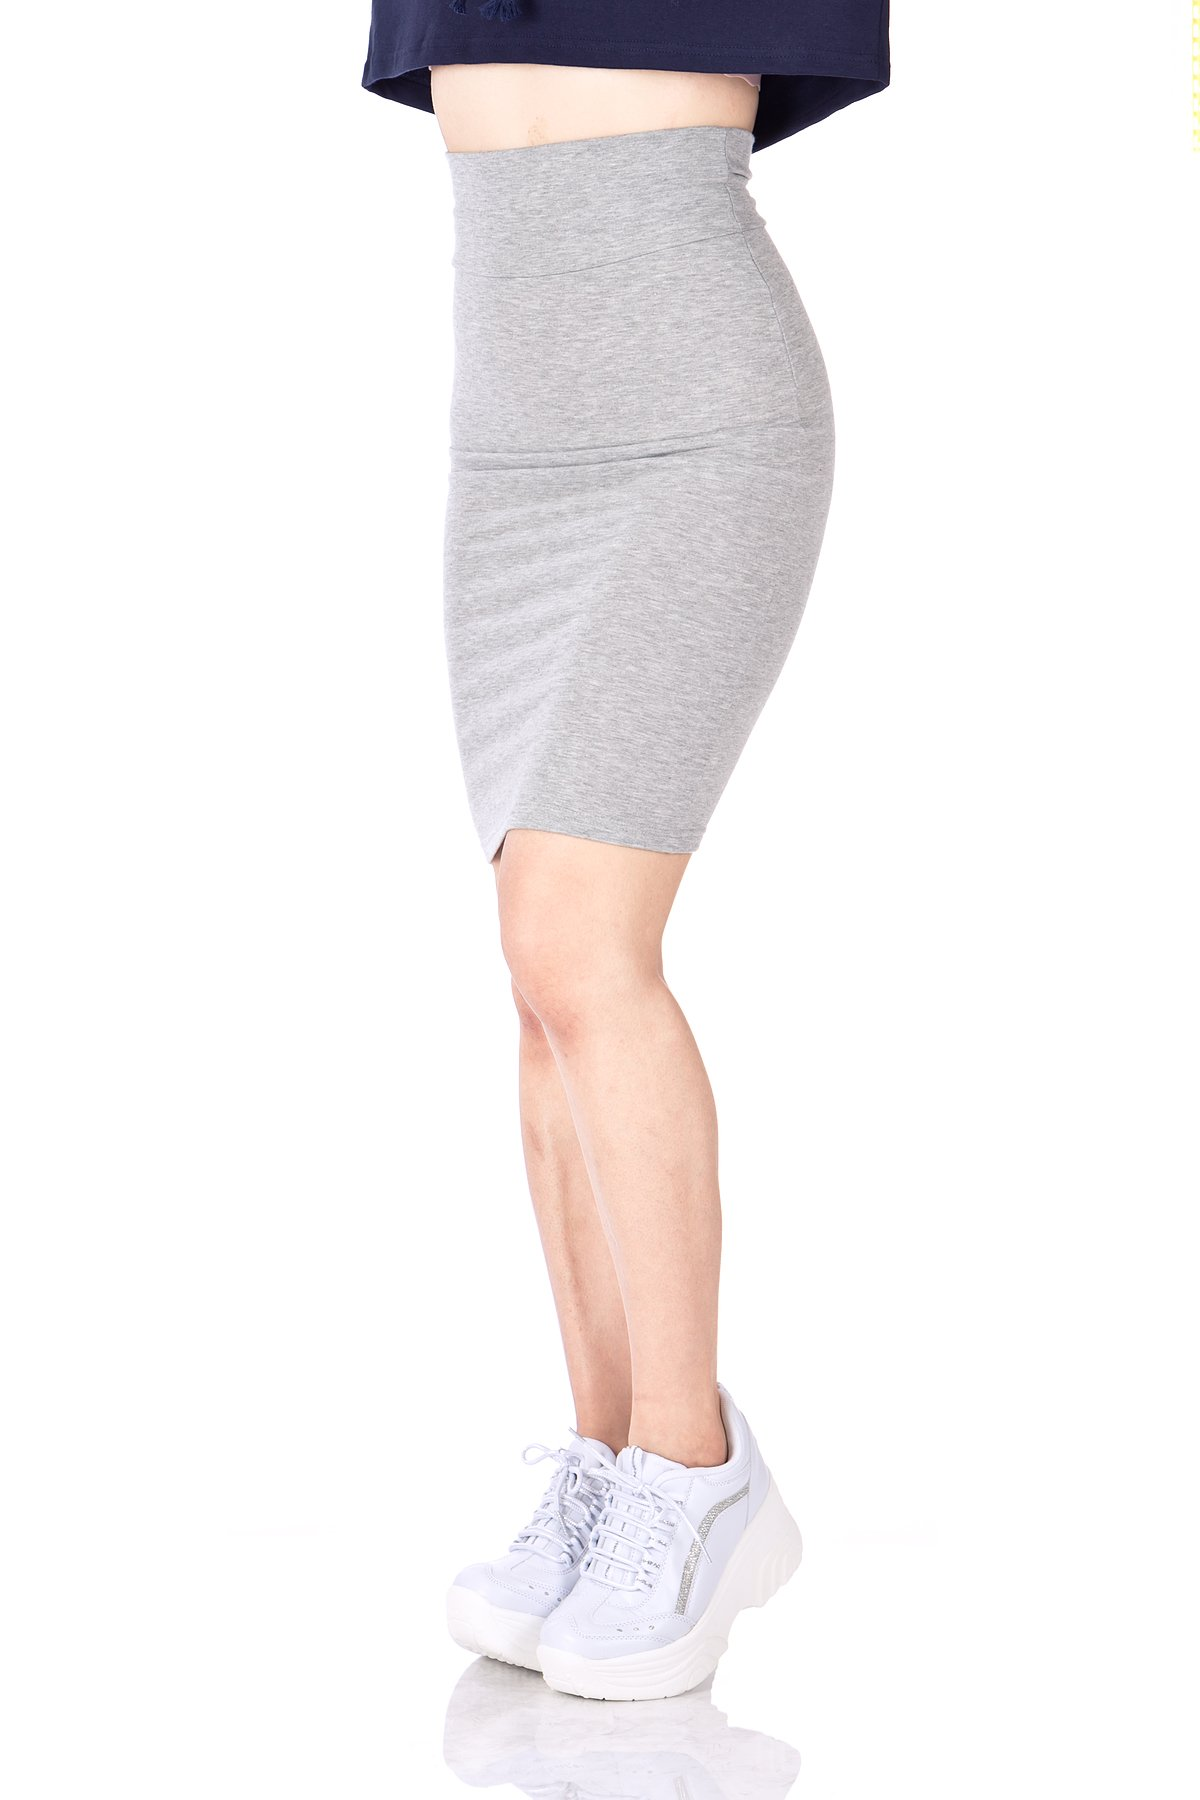 Every Occasion Stretch Pull on Wide High Waist Bodycon Pencil Knee Length Midi Skirt Melange 06